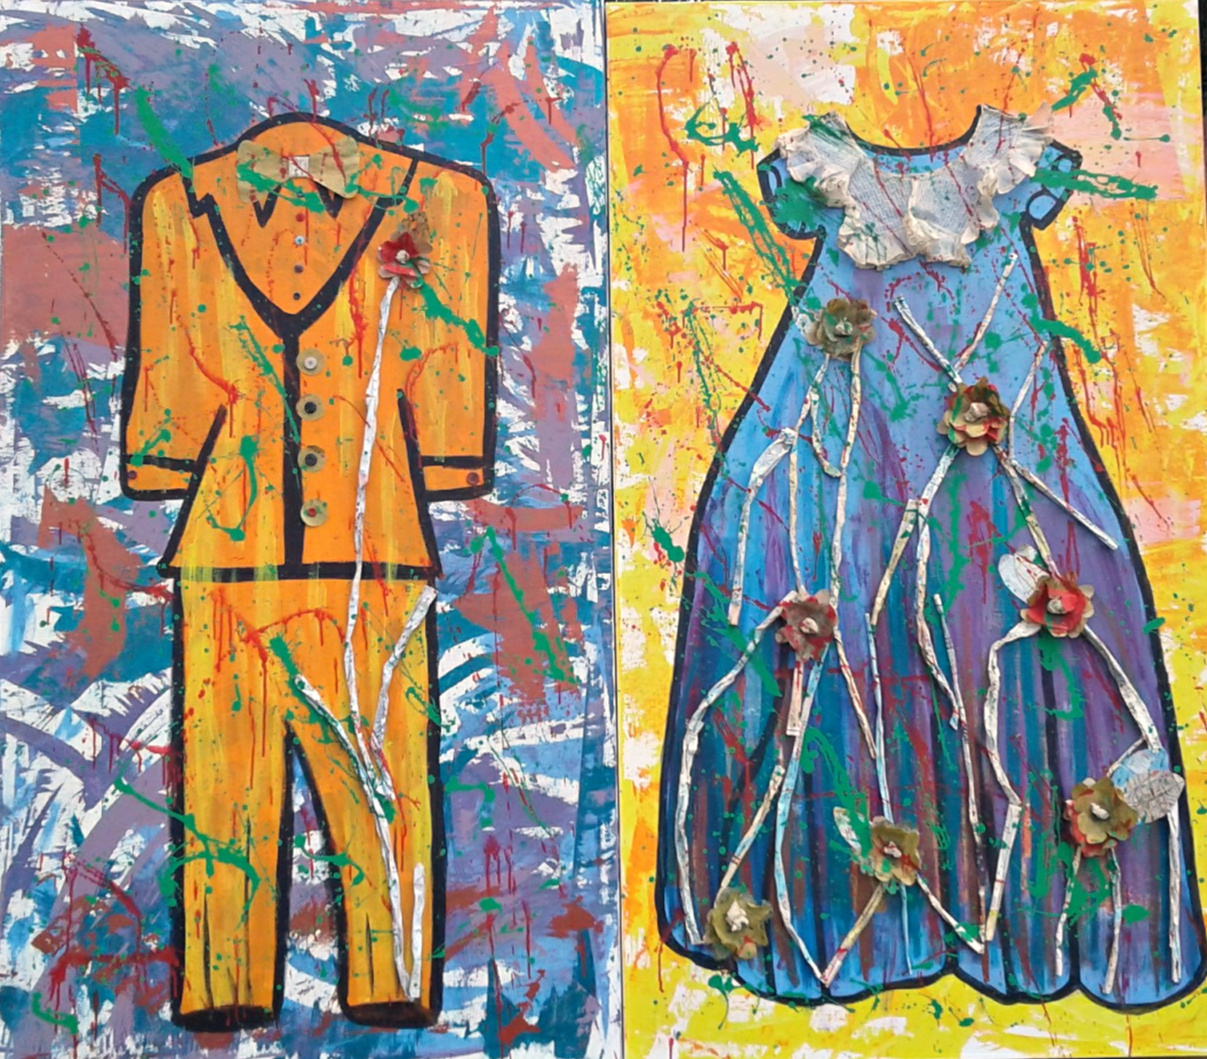 The Wedding The Dress The Suit, 2017. Mixed Media, 80 x 60 inches diptych, $4000